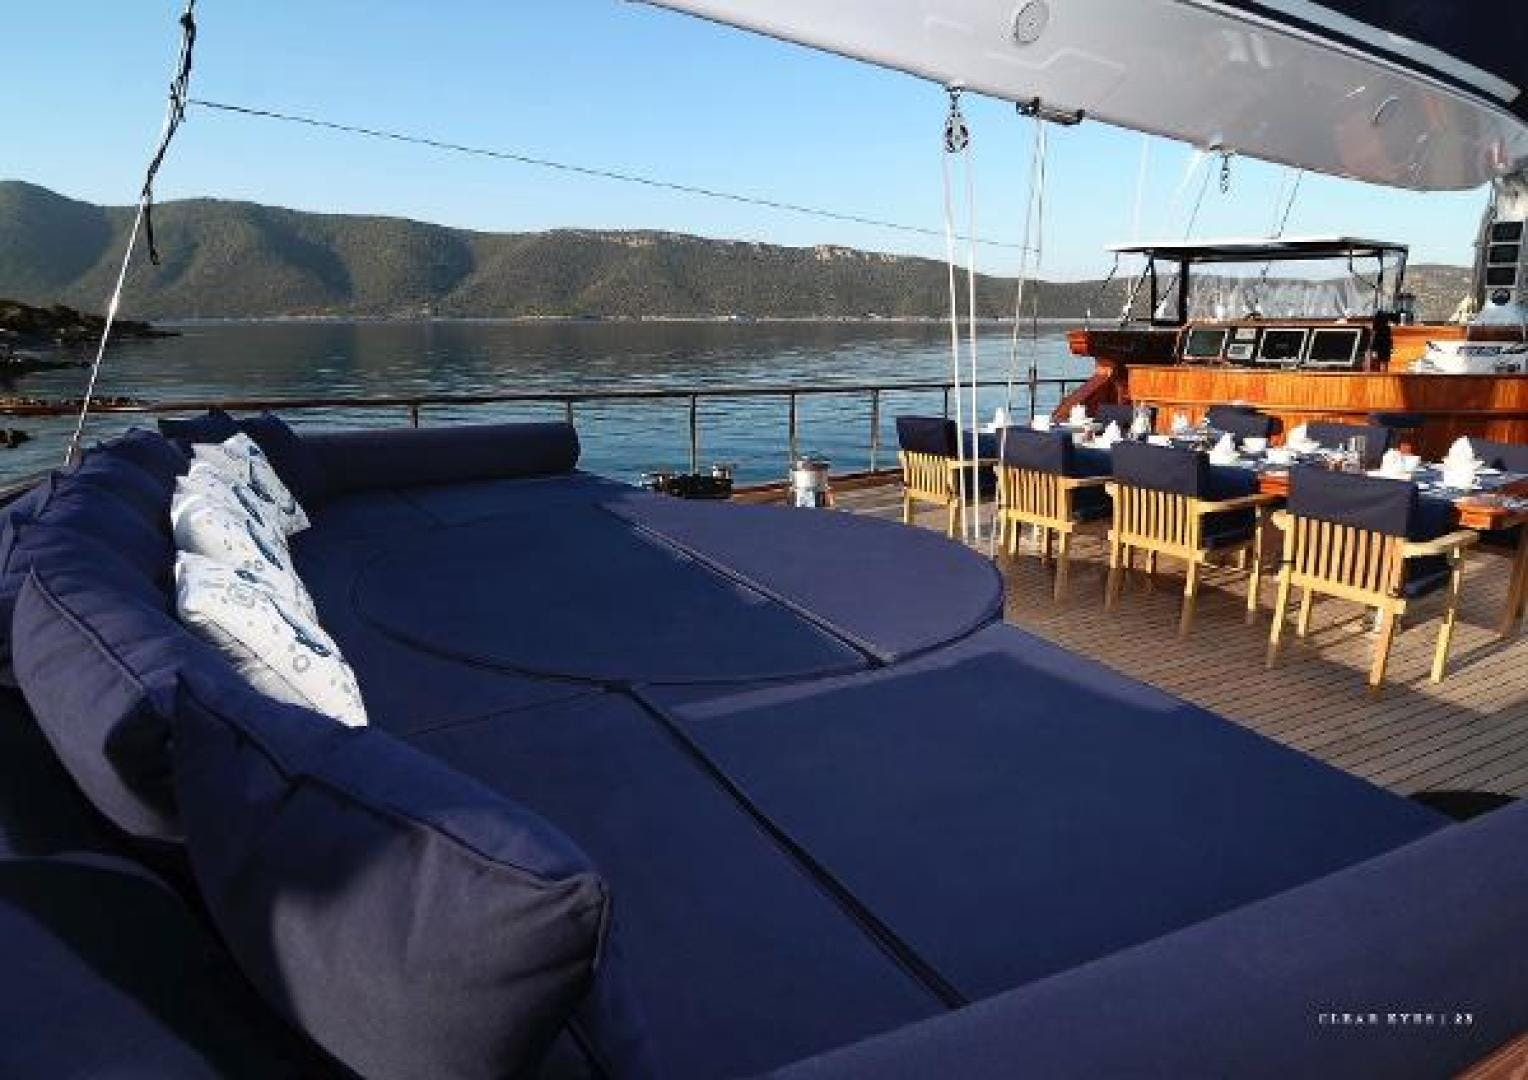 2010 Ketch 144' Pax Navi Yachts CLEAR EYES | Picture 3 of 22